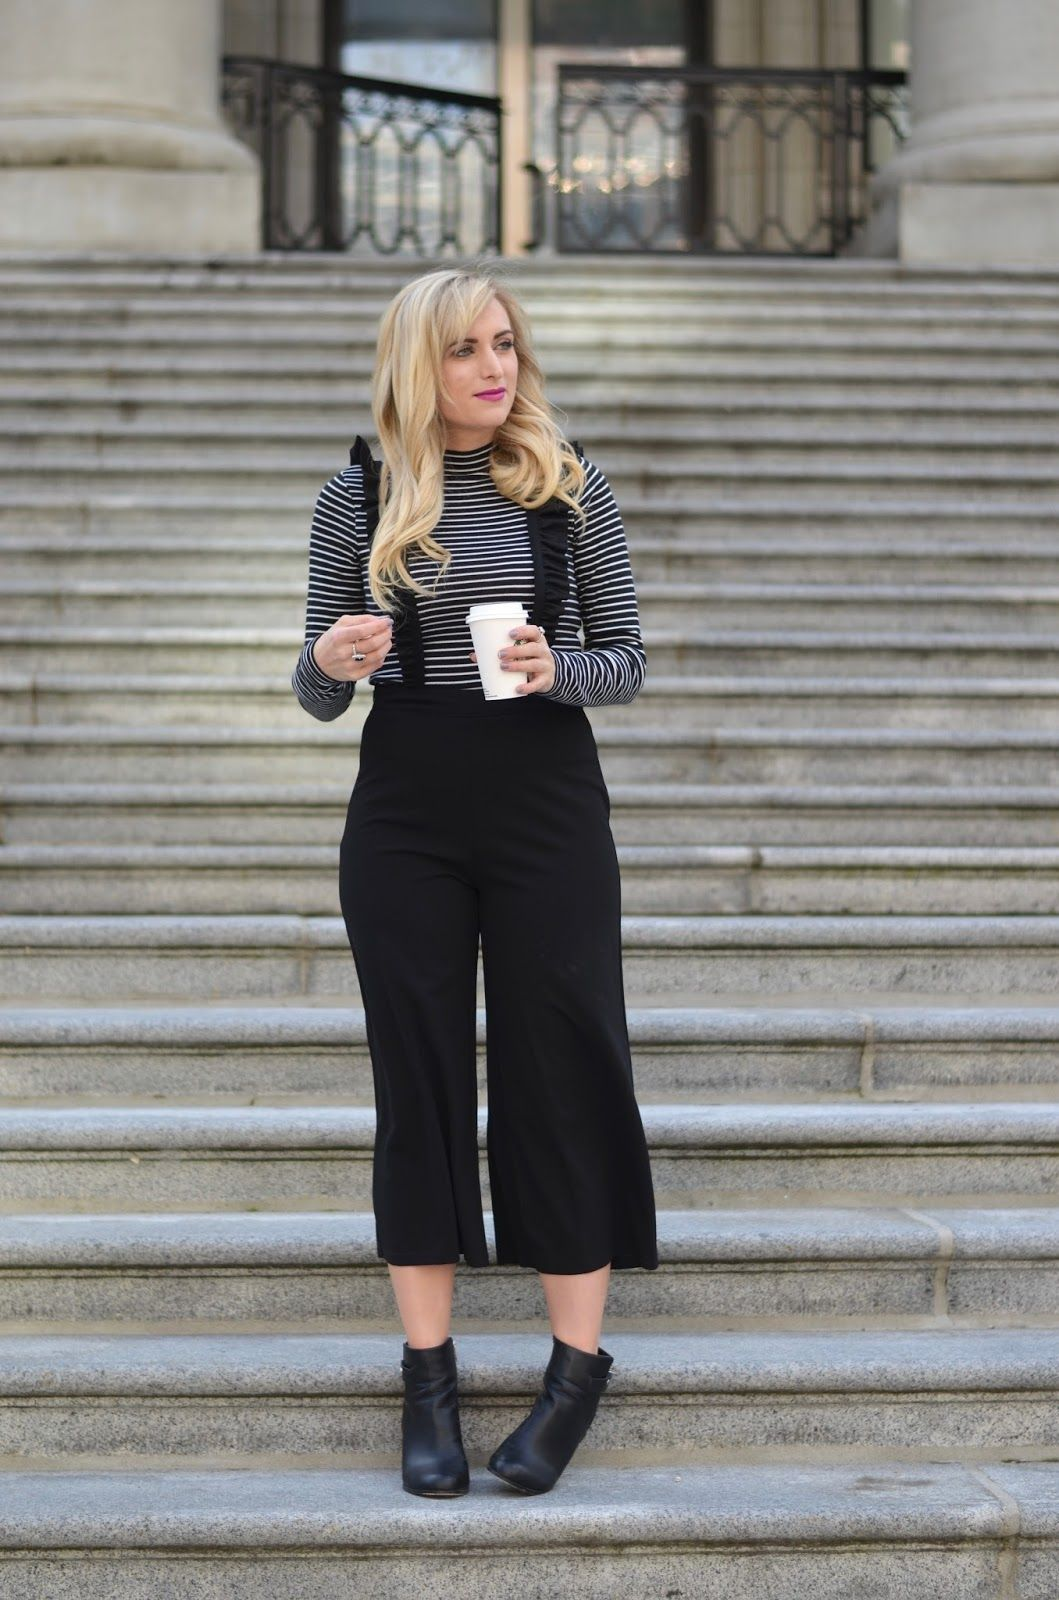 Work Wear | Overalls you Can Actually Wear As An Adult | LegalLee Blonde